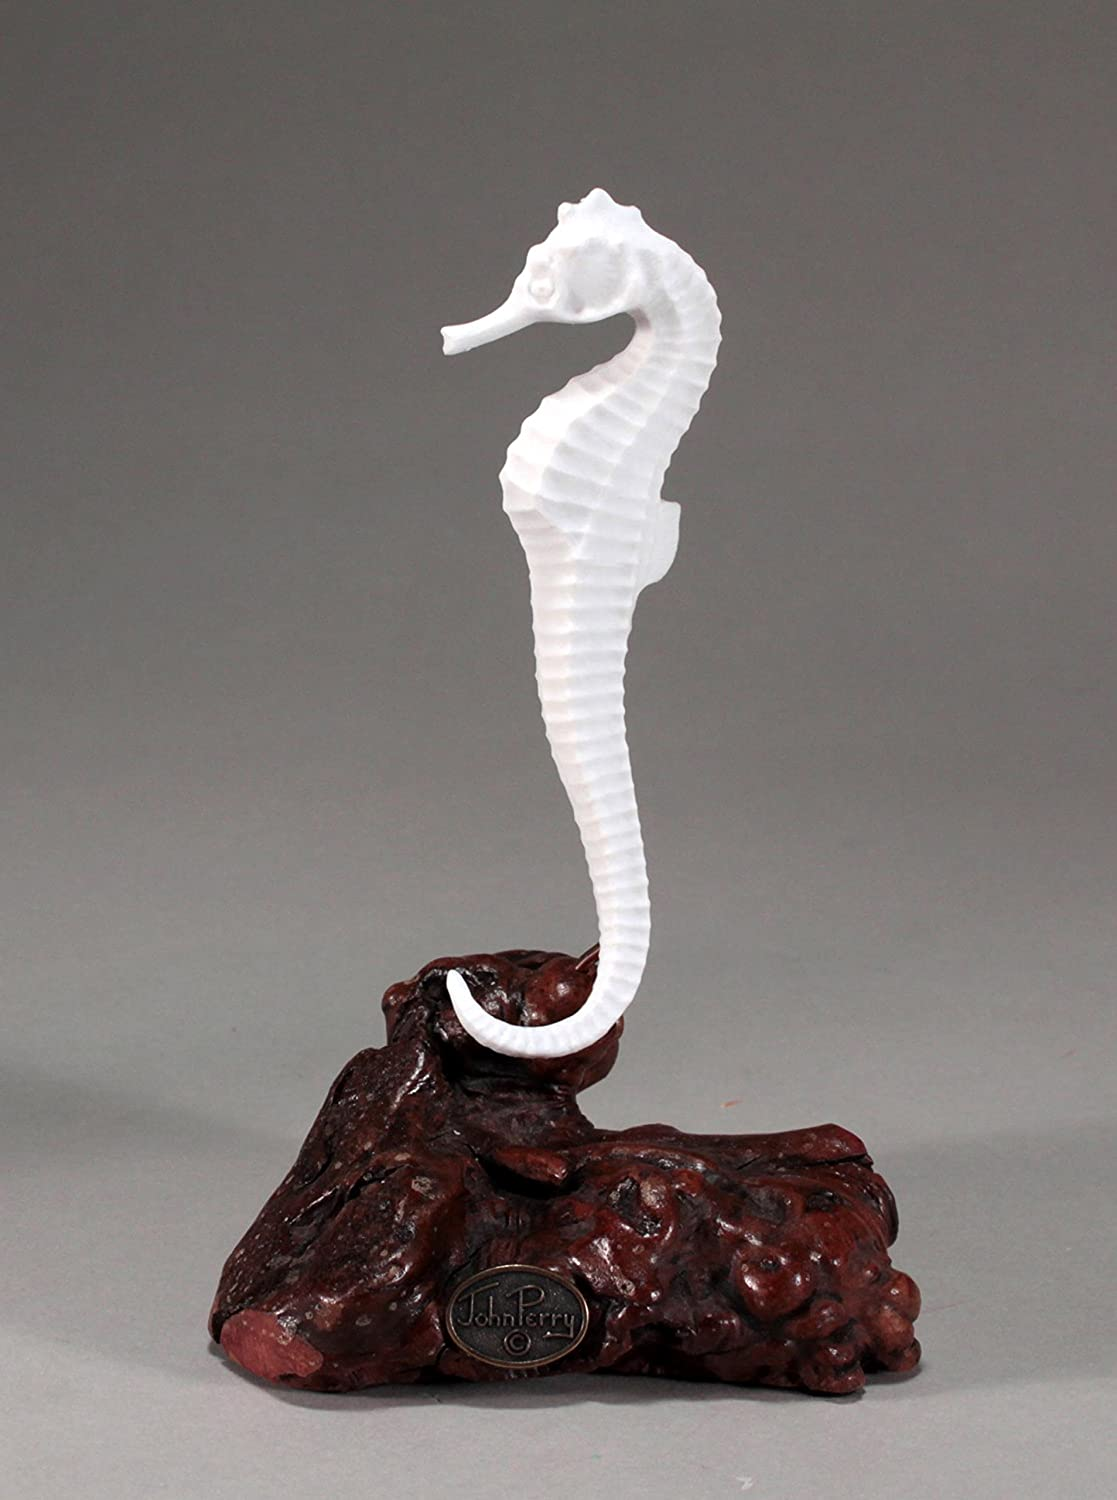 Seahorse Sculpture by John Perry Pellucida on Burl Wood Statue 5in Long